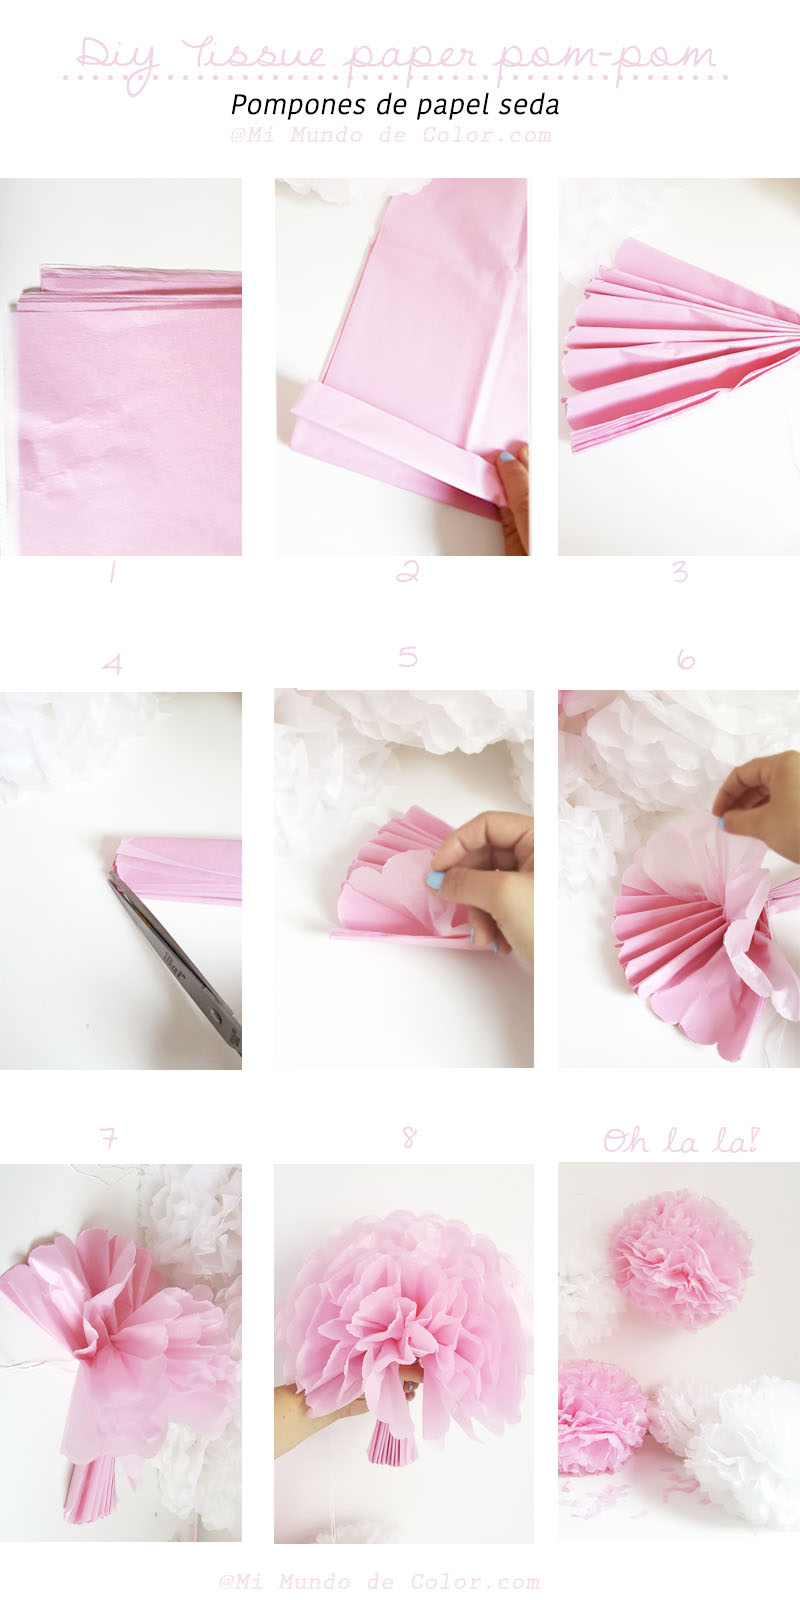 DIY | COMO HACER POMPONES CON PAPEL DE SEDA - Handbox Craft Lovers ...